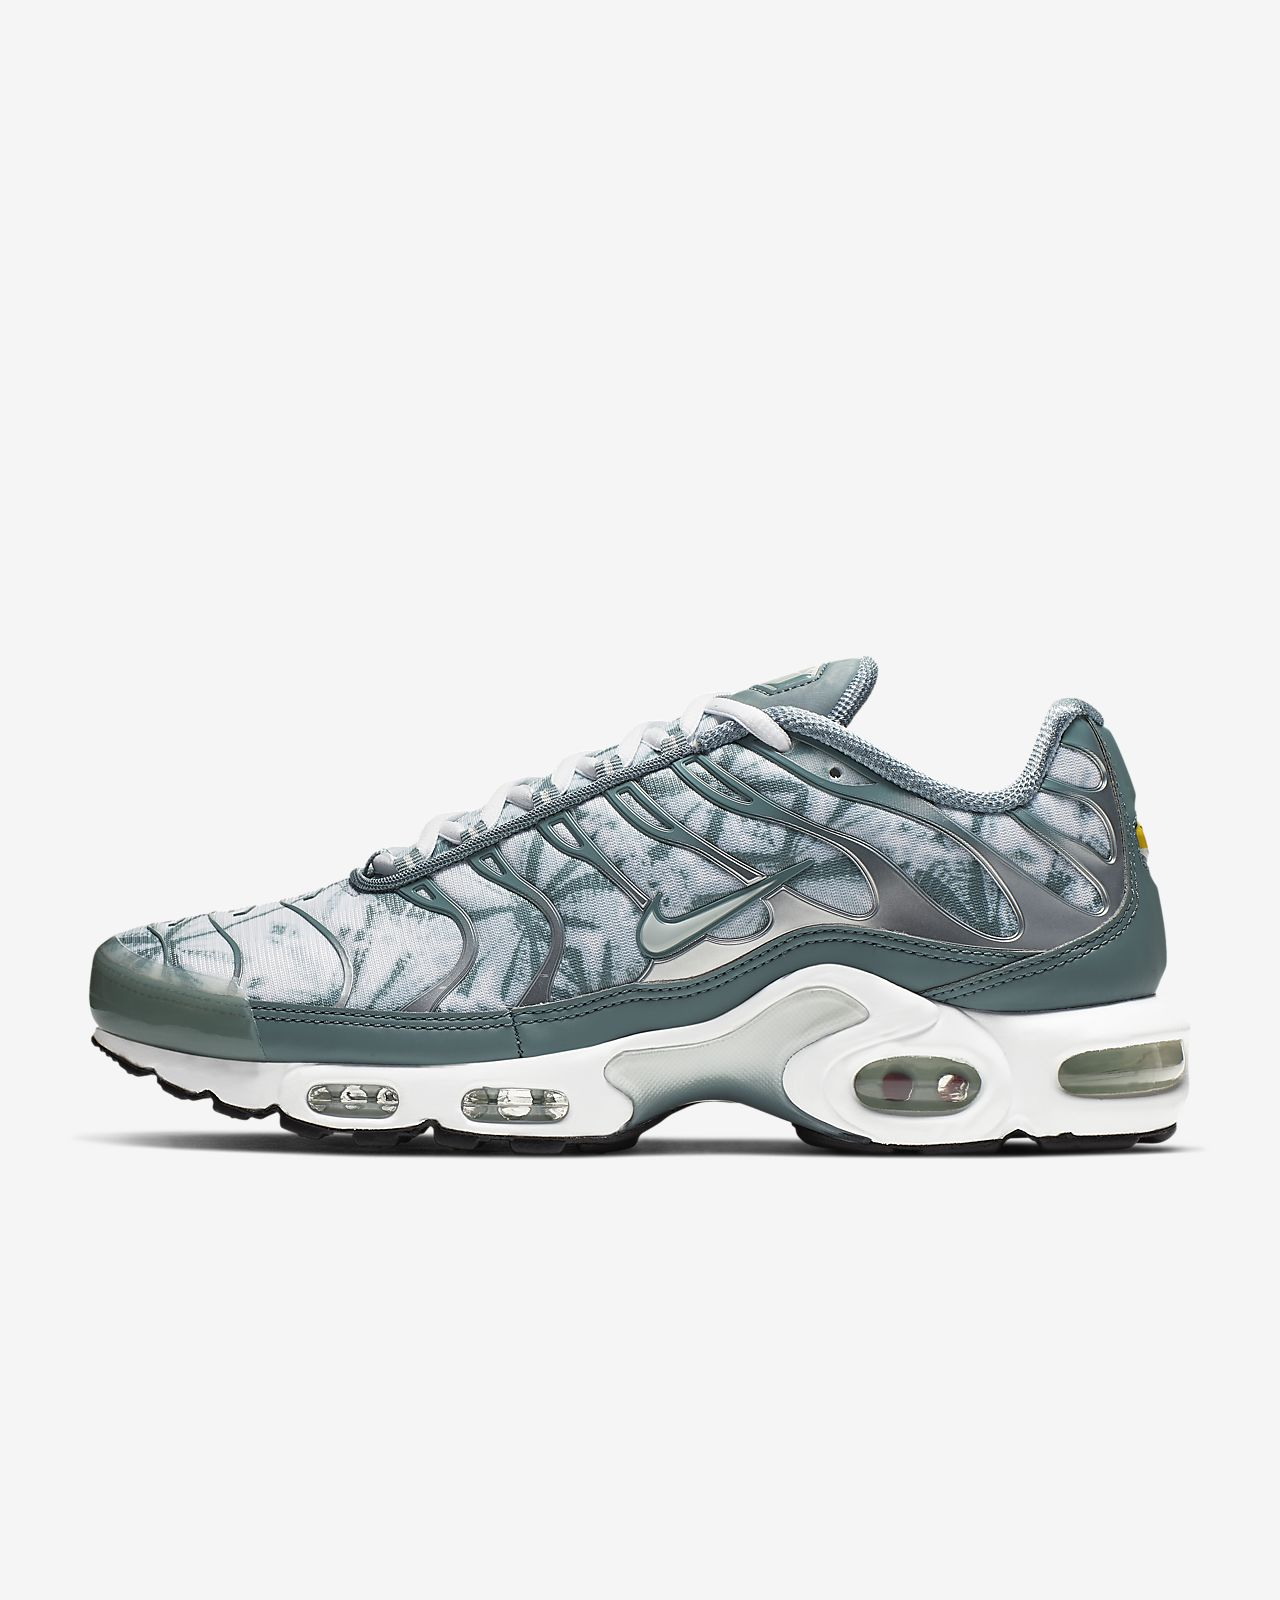 pretty cheap buy sale popular stores air max tn nike